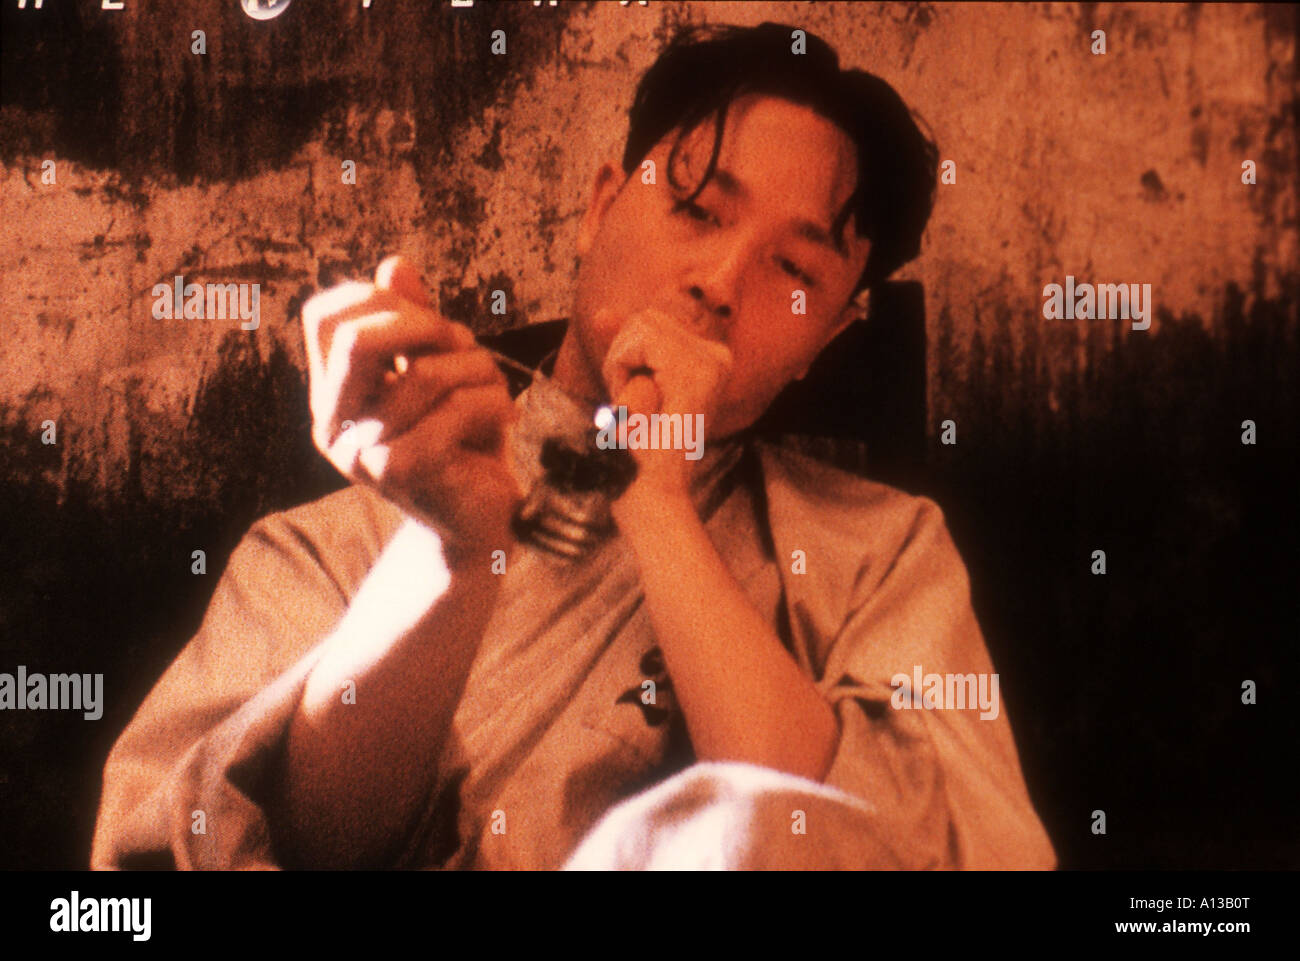 Bawang bieji Year 1993 Director Chen Kaige Palme d or at the International Cannes Film Festival in 1993 ex aequo - Stock Image